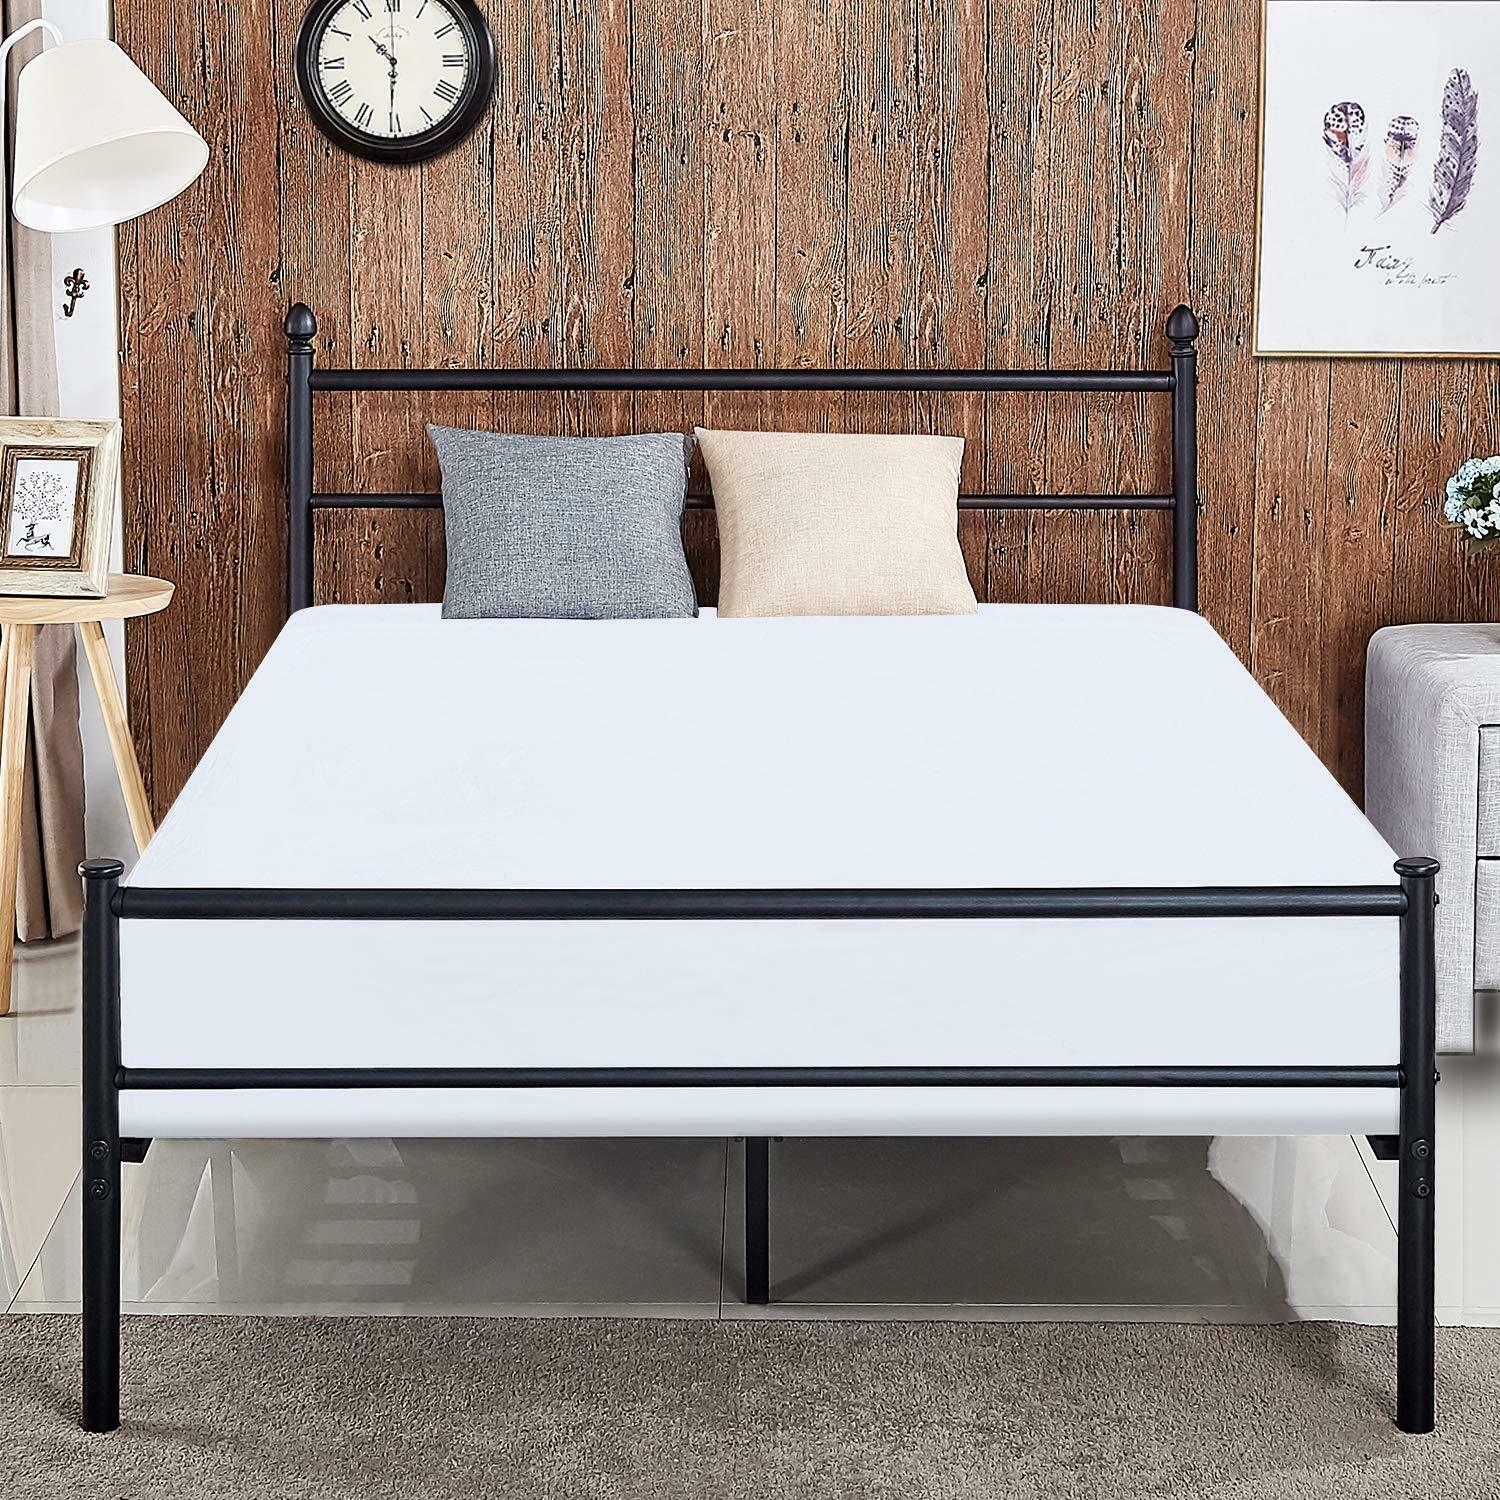 Metal Platform Bed Frame Queen with Storage Headboard Easy Assembly